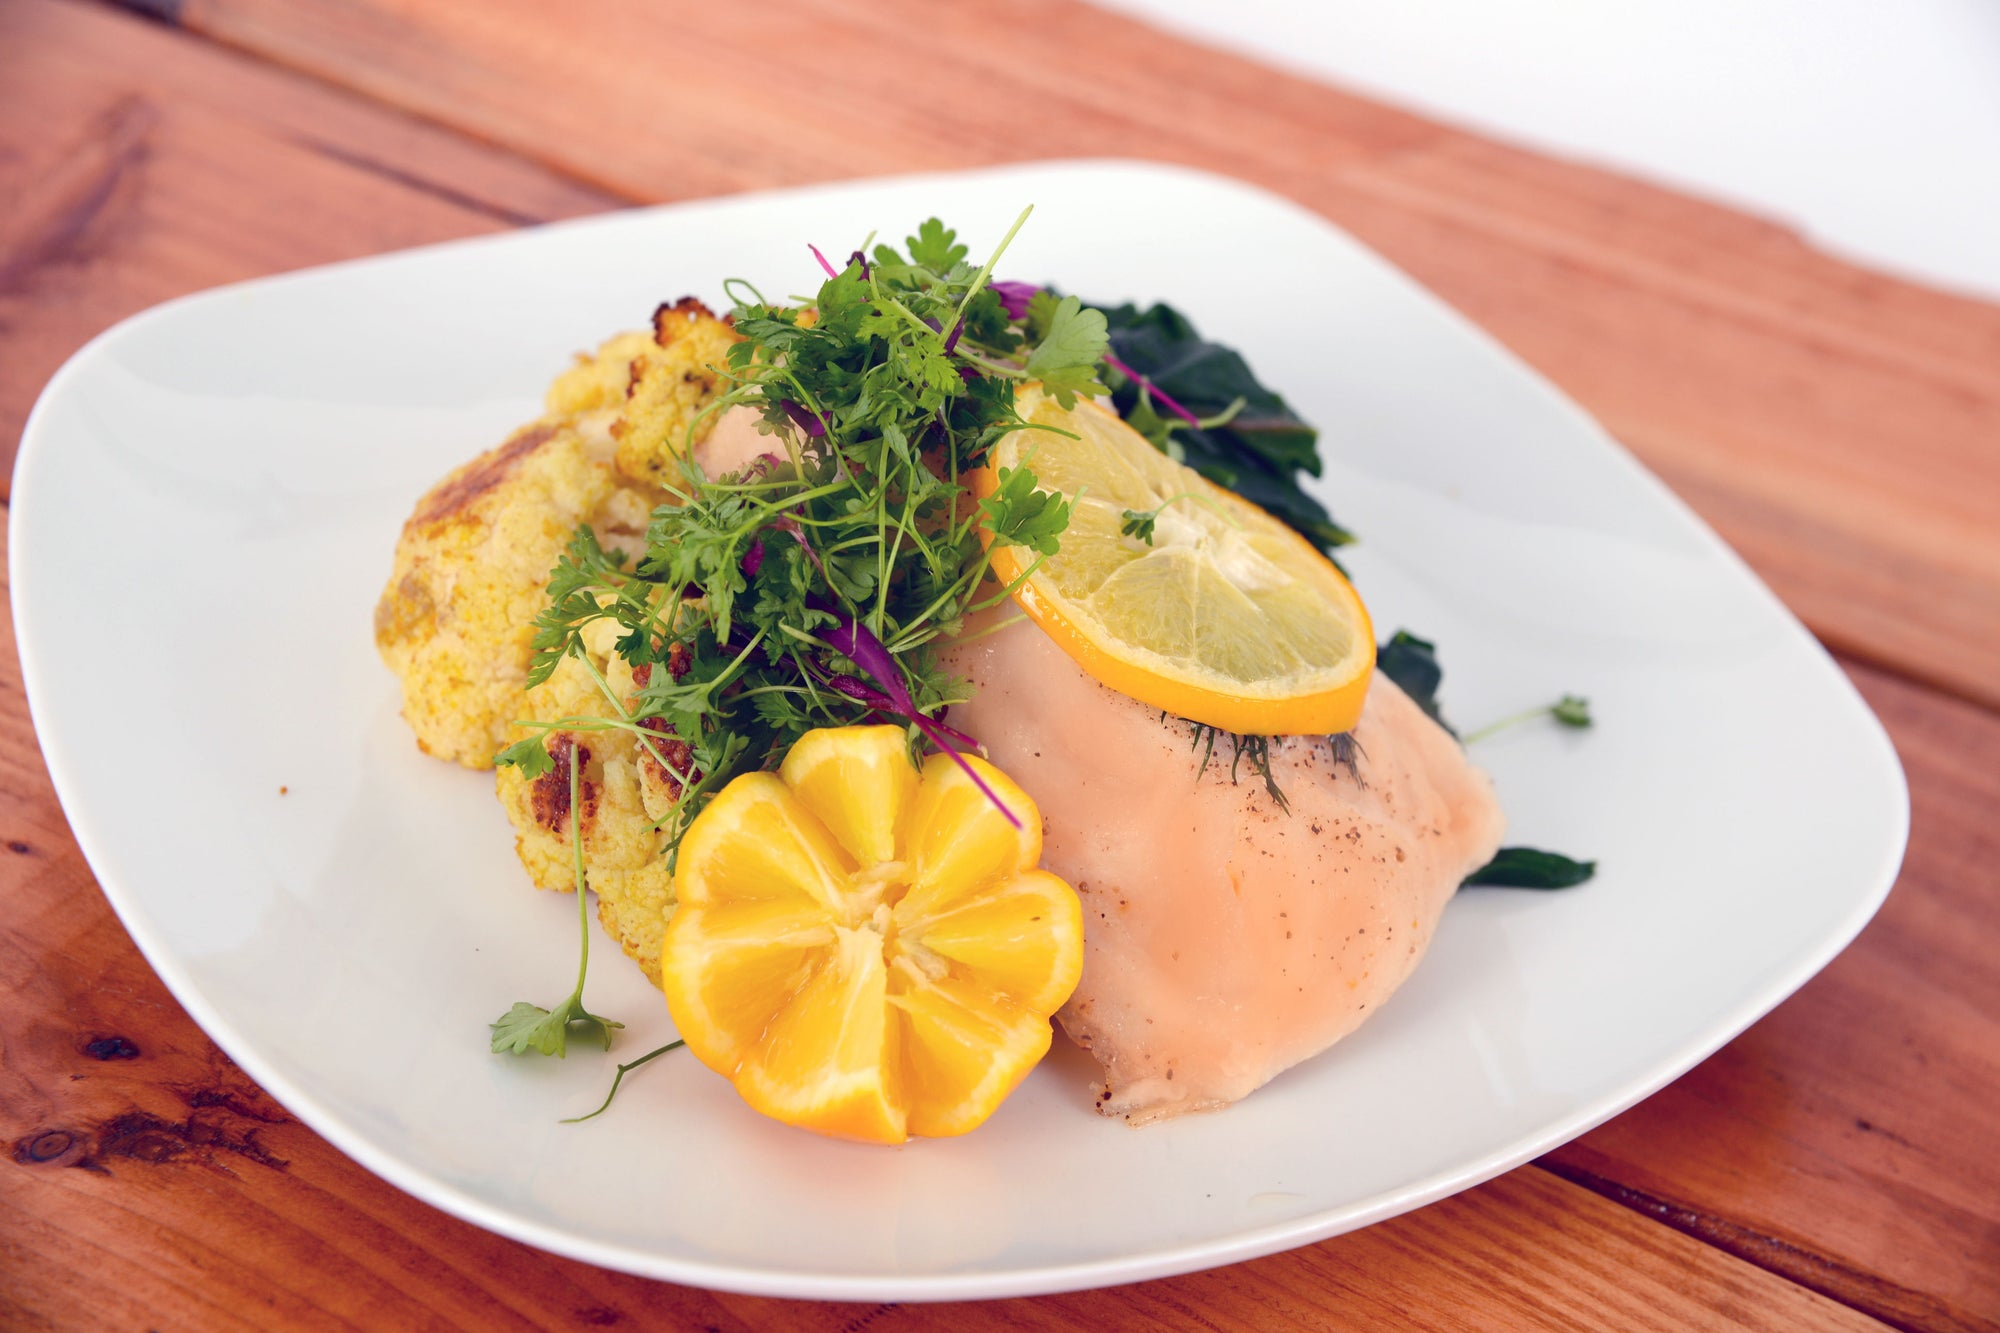 Lemon Dill Wild Isle Salmon (Monday 7/20 Delivery)